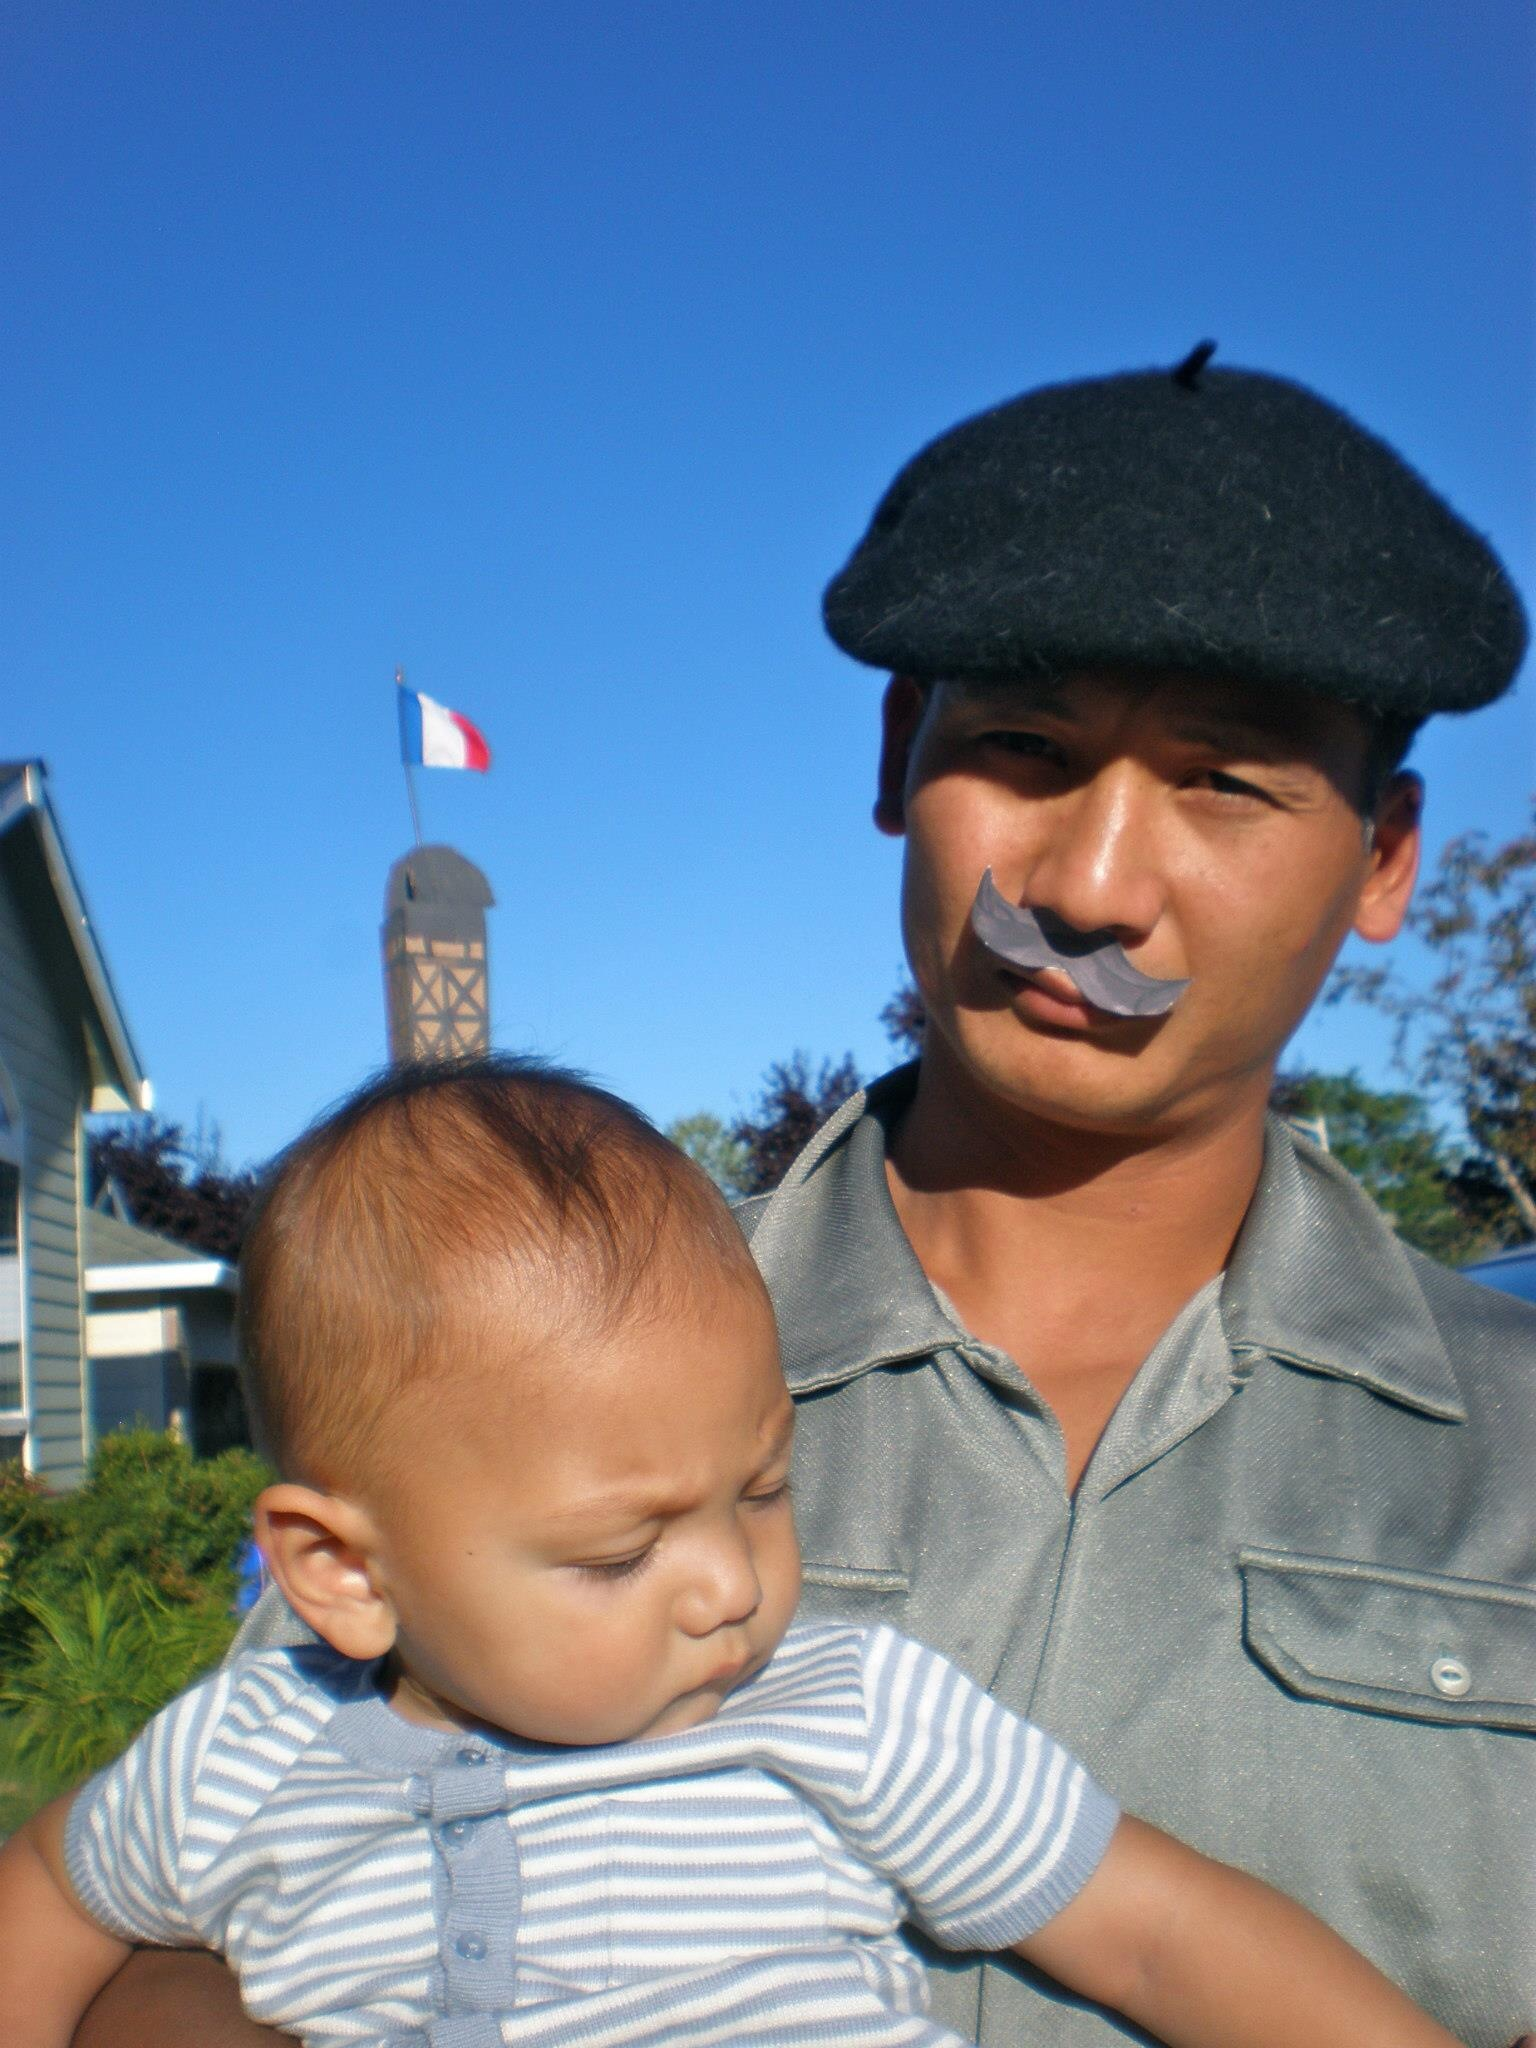 My husband having some French fun with our infant son